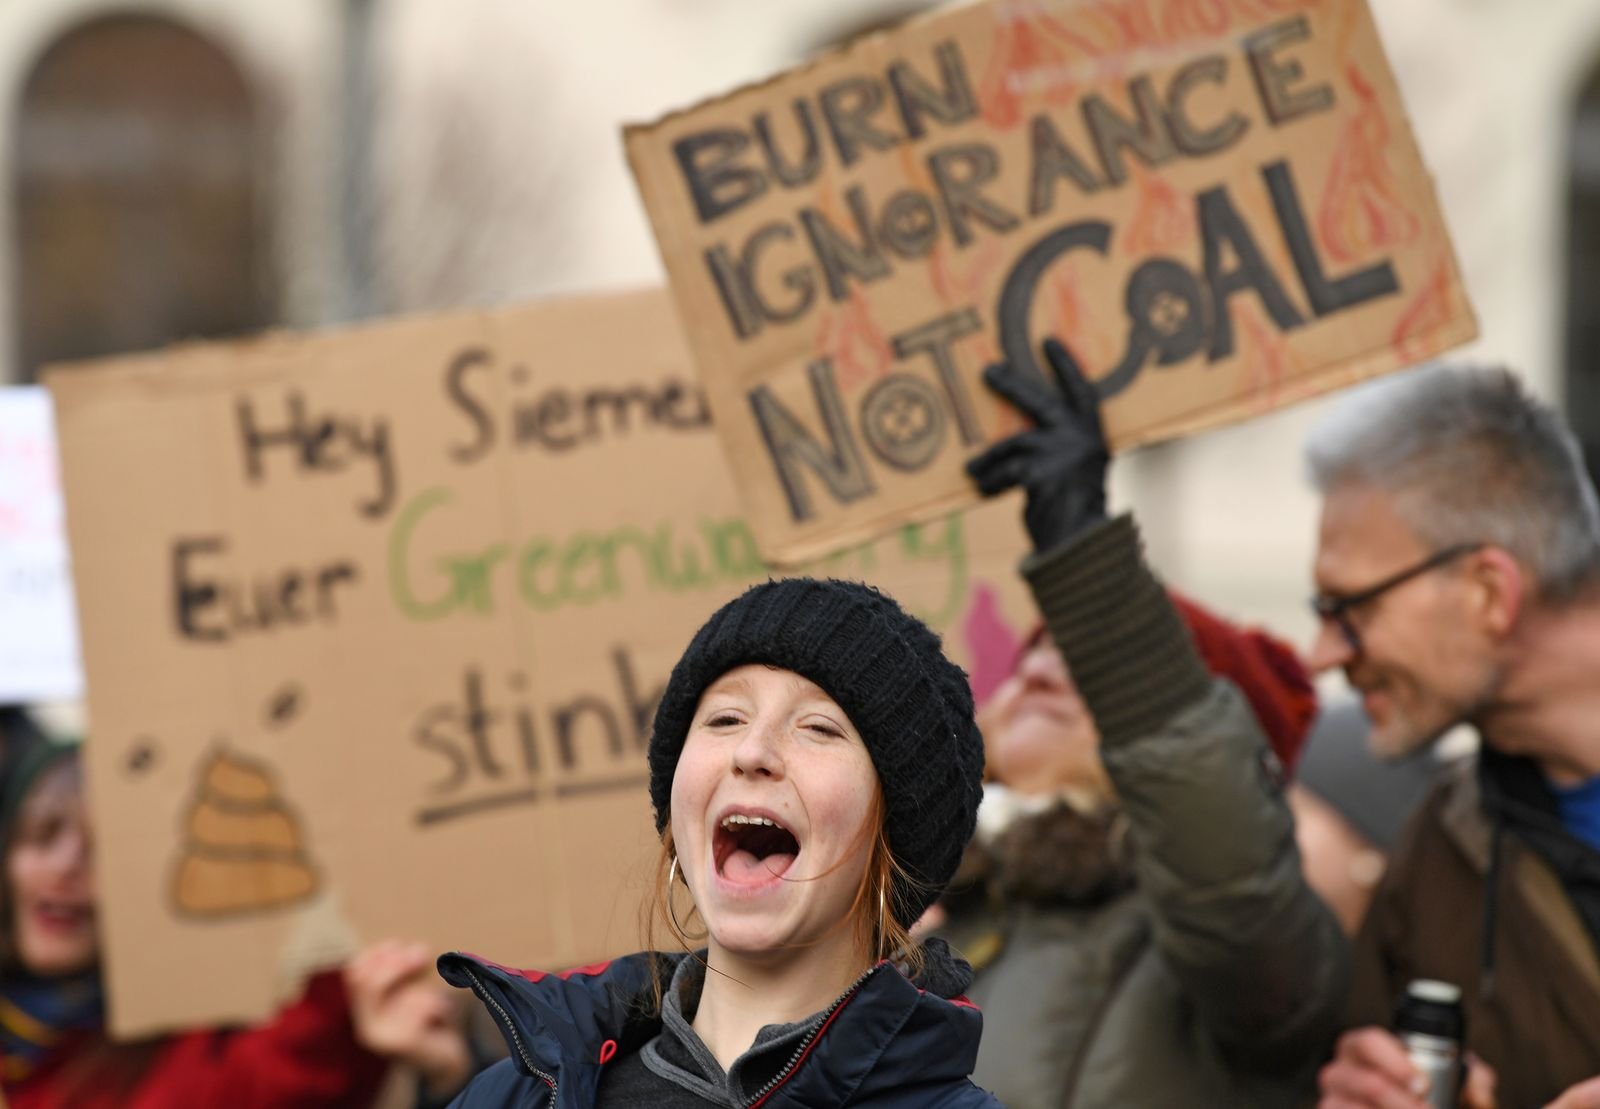 Fridays for Future activists take part in a protest in front of the Siemens headquarters in Munich